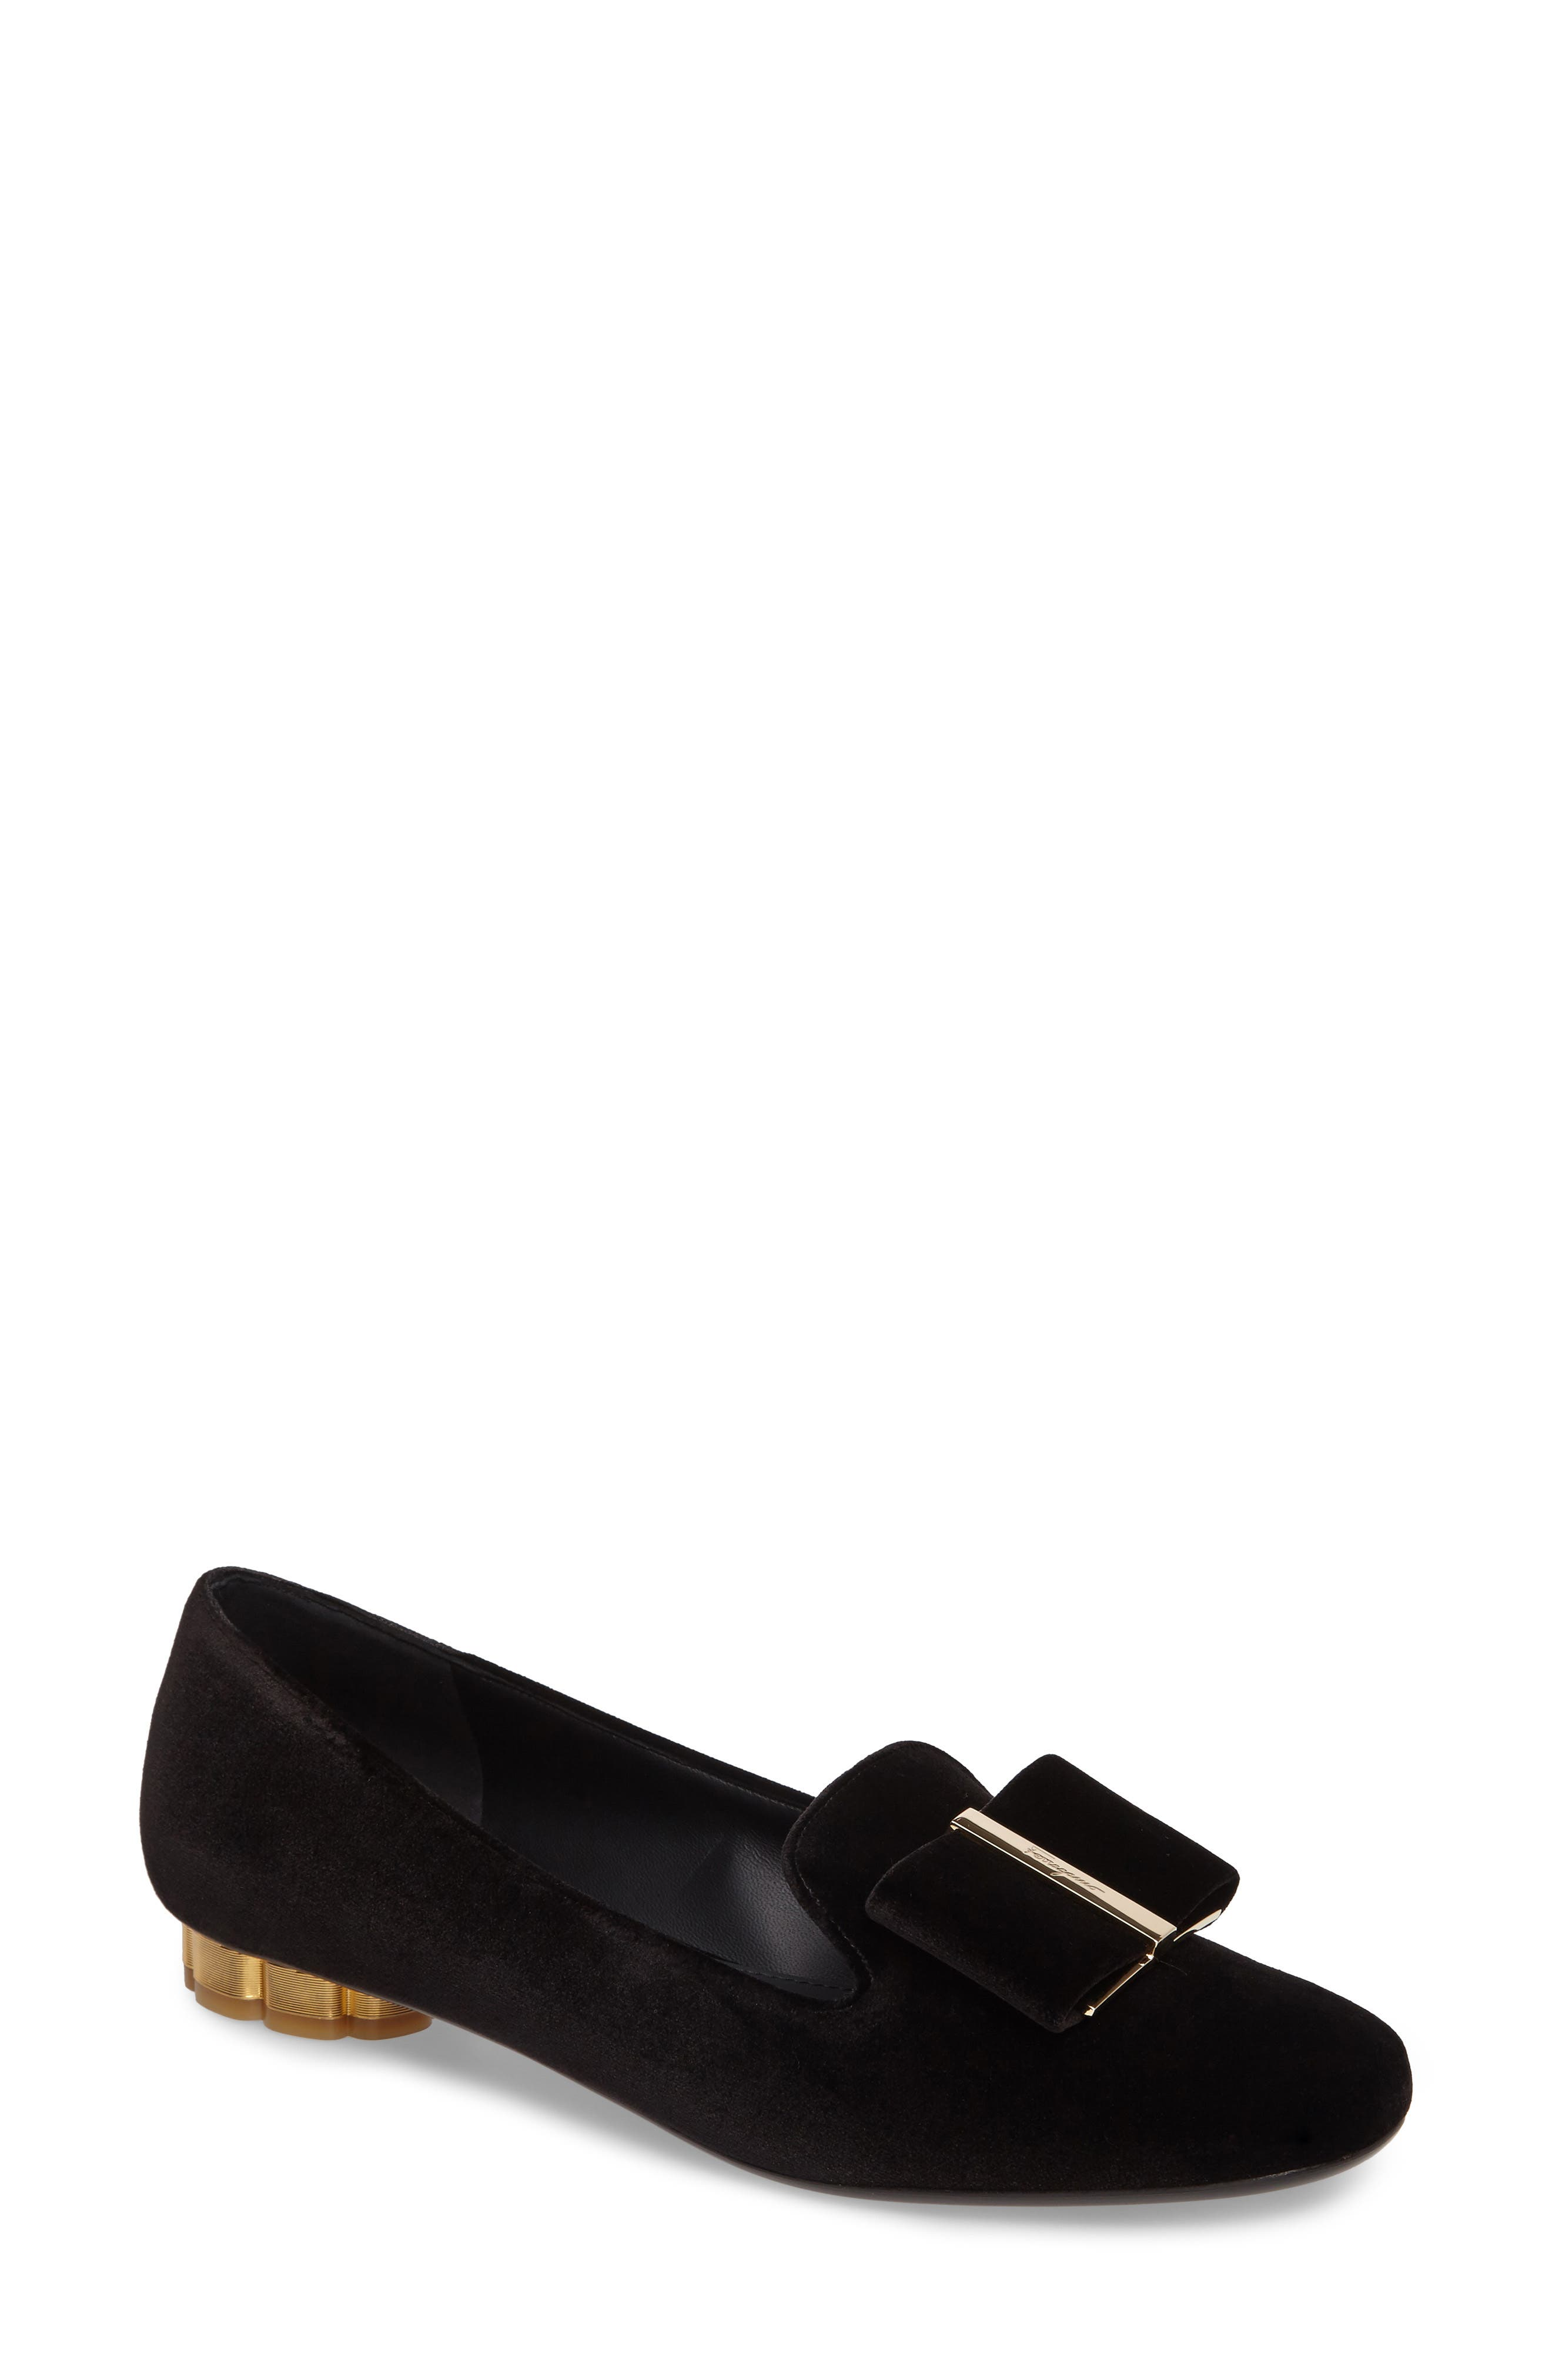 SALVATORE FERRAGAMO Flower Heel Smoking Loafer